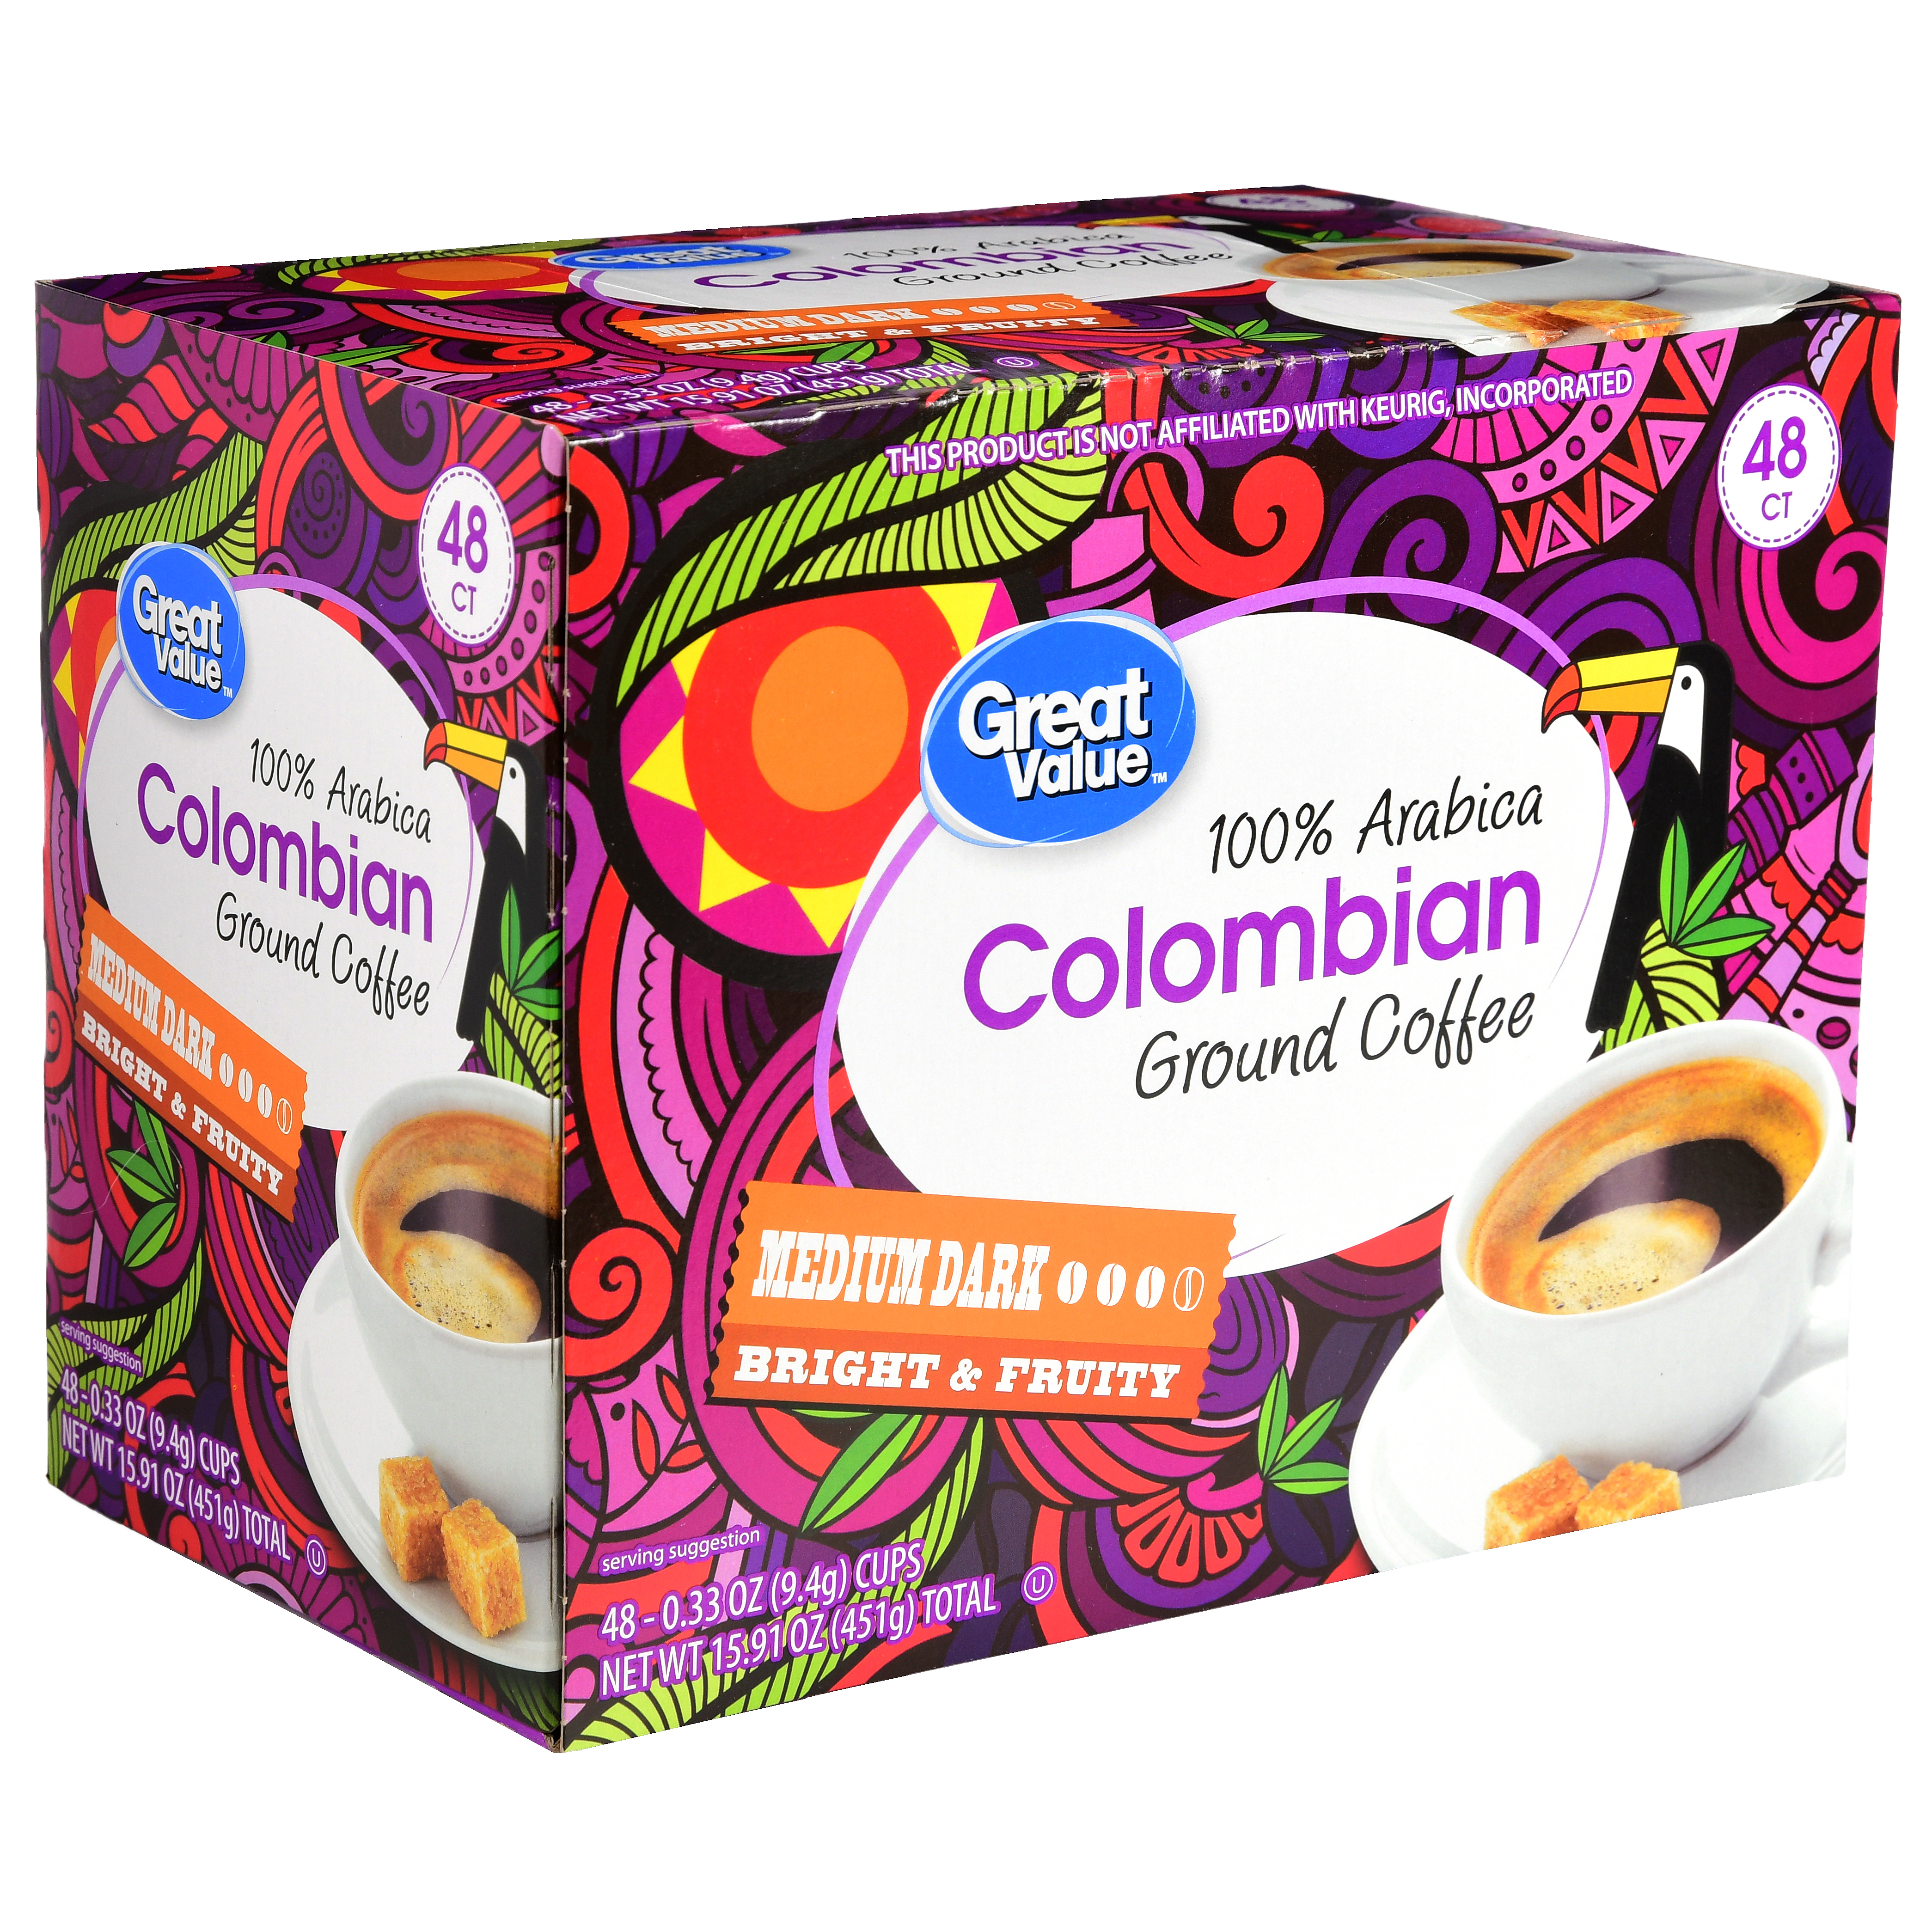 Great Value Colombian Ground Coffee Single Serve Cups, Medium Dark Roast, 48 Count